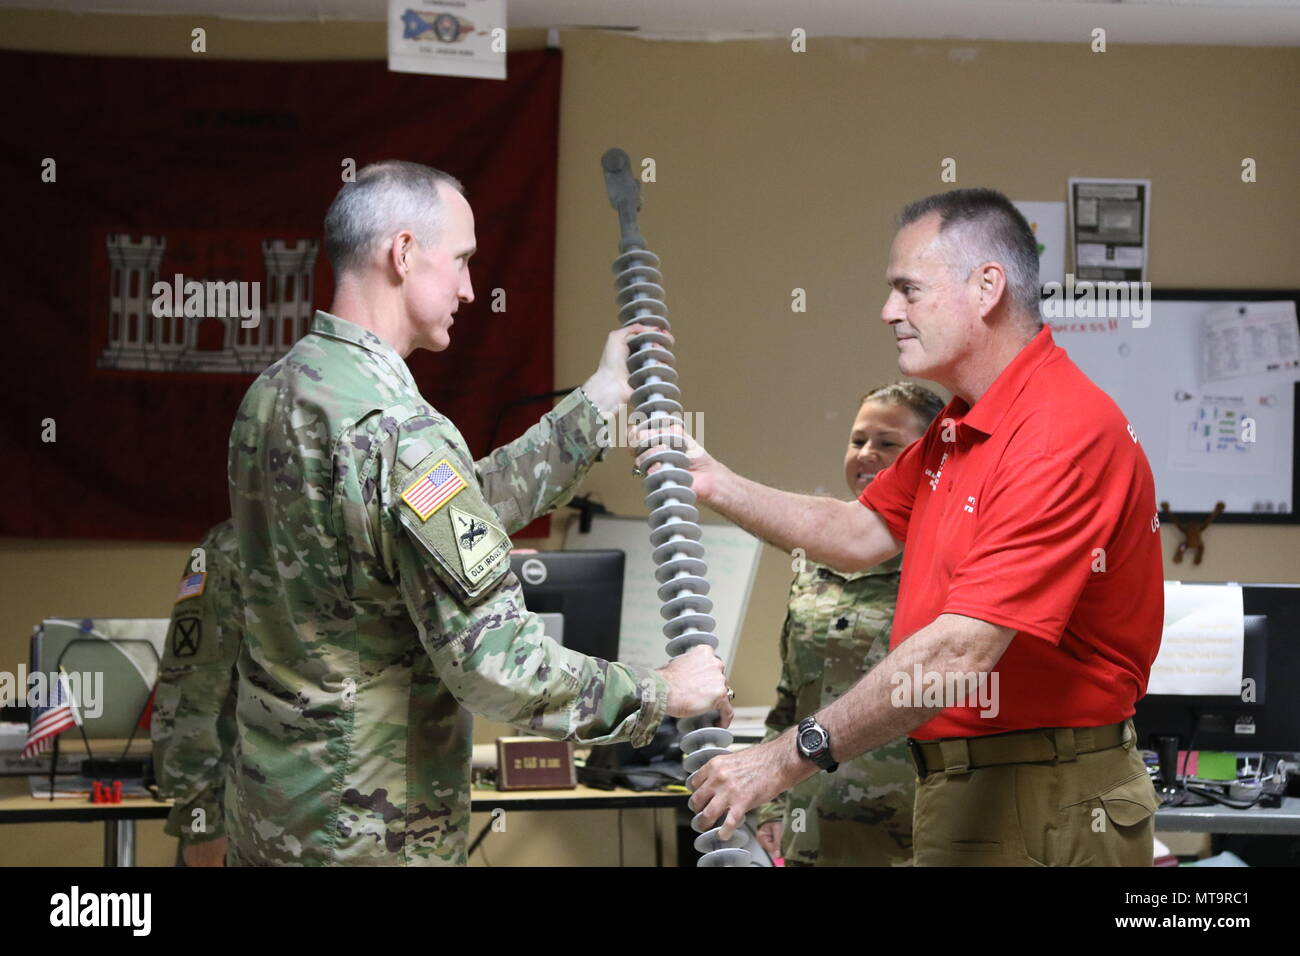 U.S. Army Colonel Jason Kirk conducts a battle rhythm handover to LTC Kristen Dahle in San Juan, Puerto Rico. - Stock Image